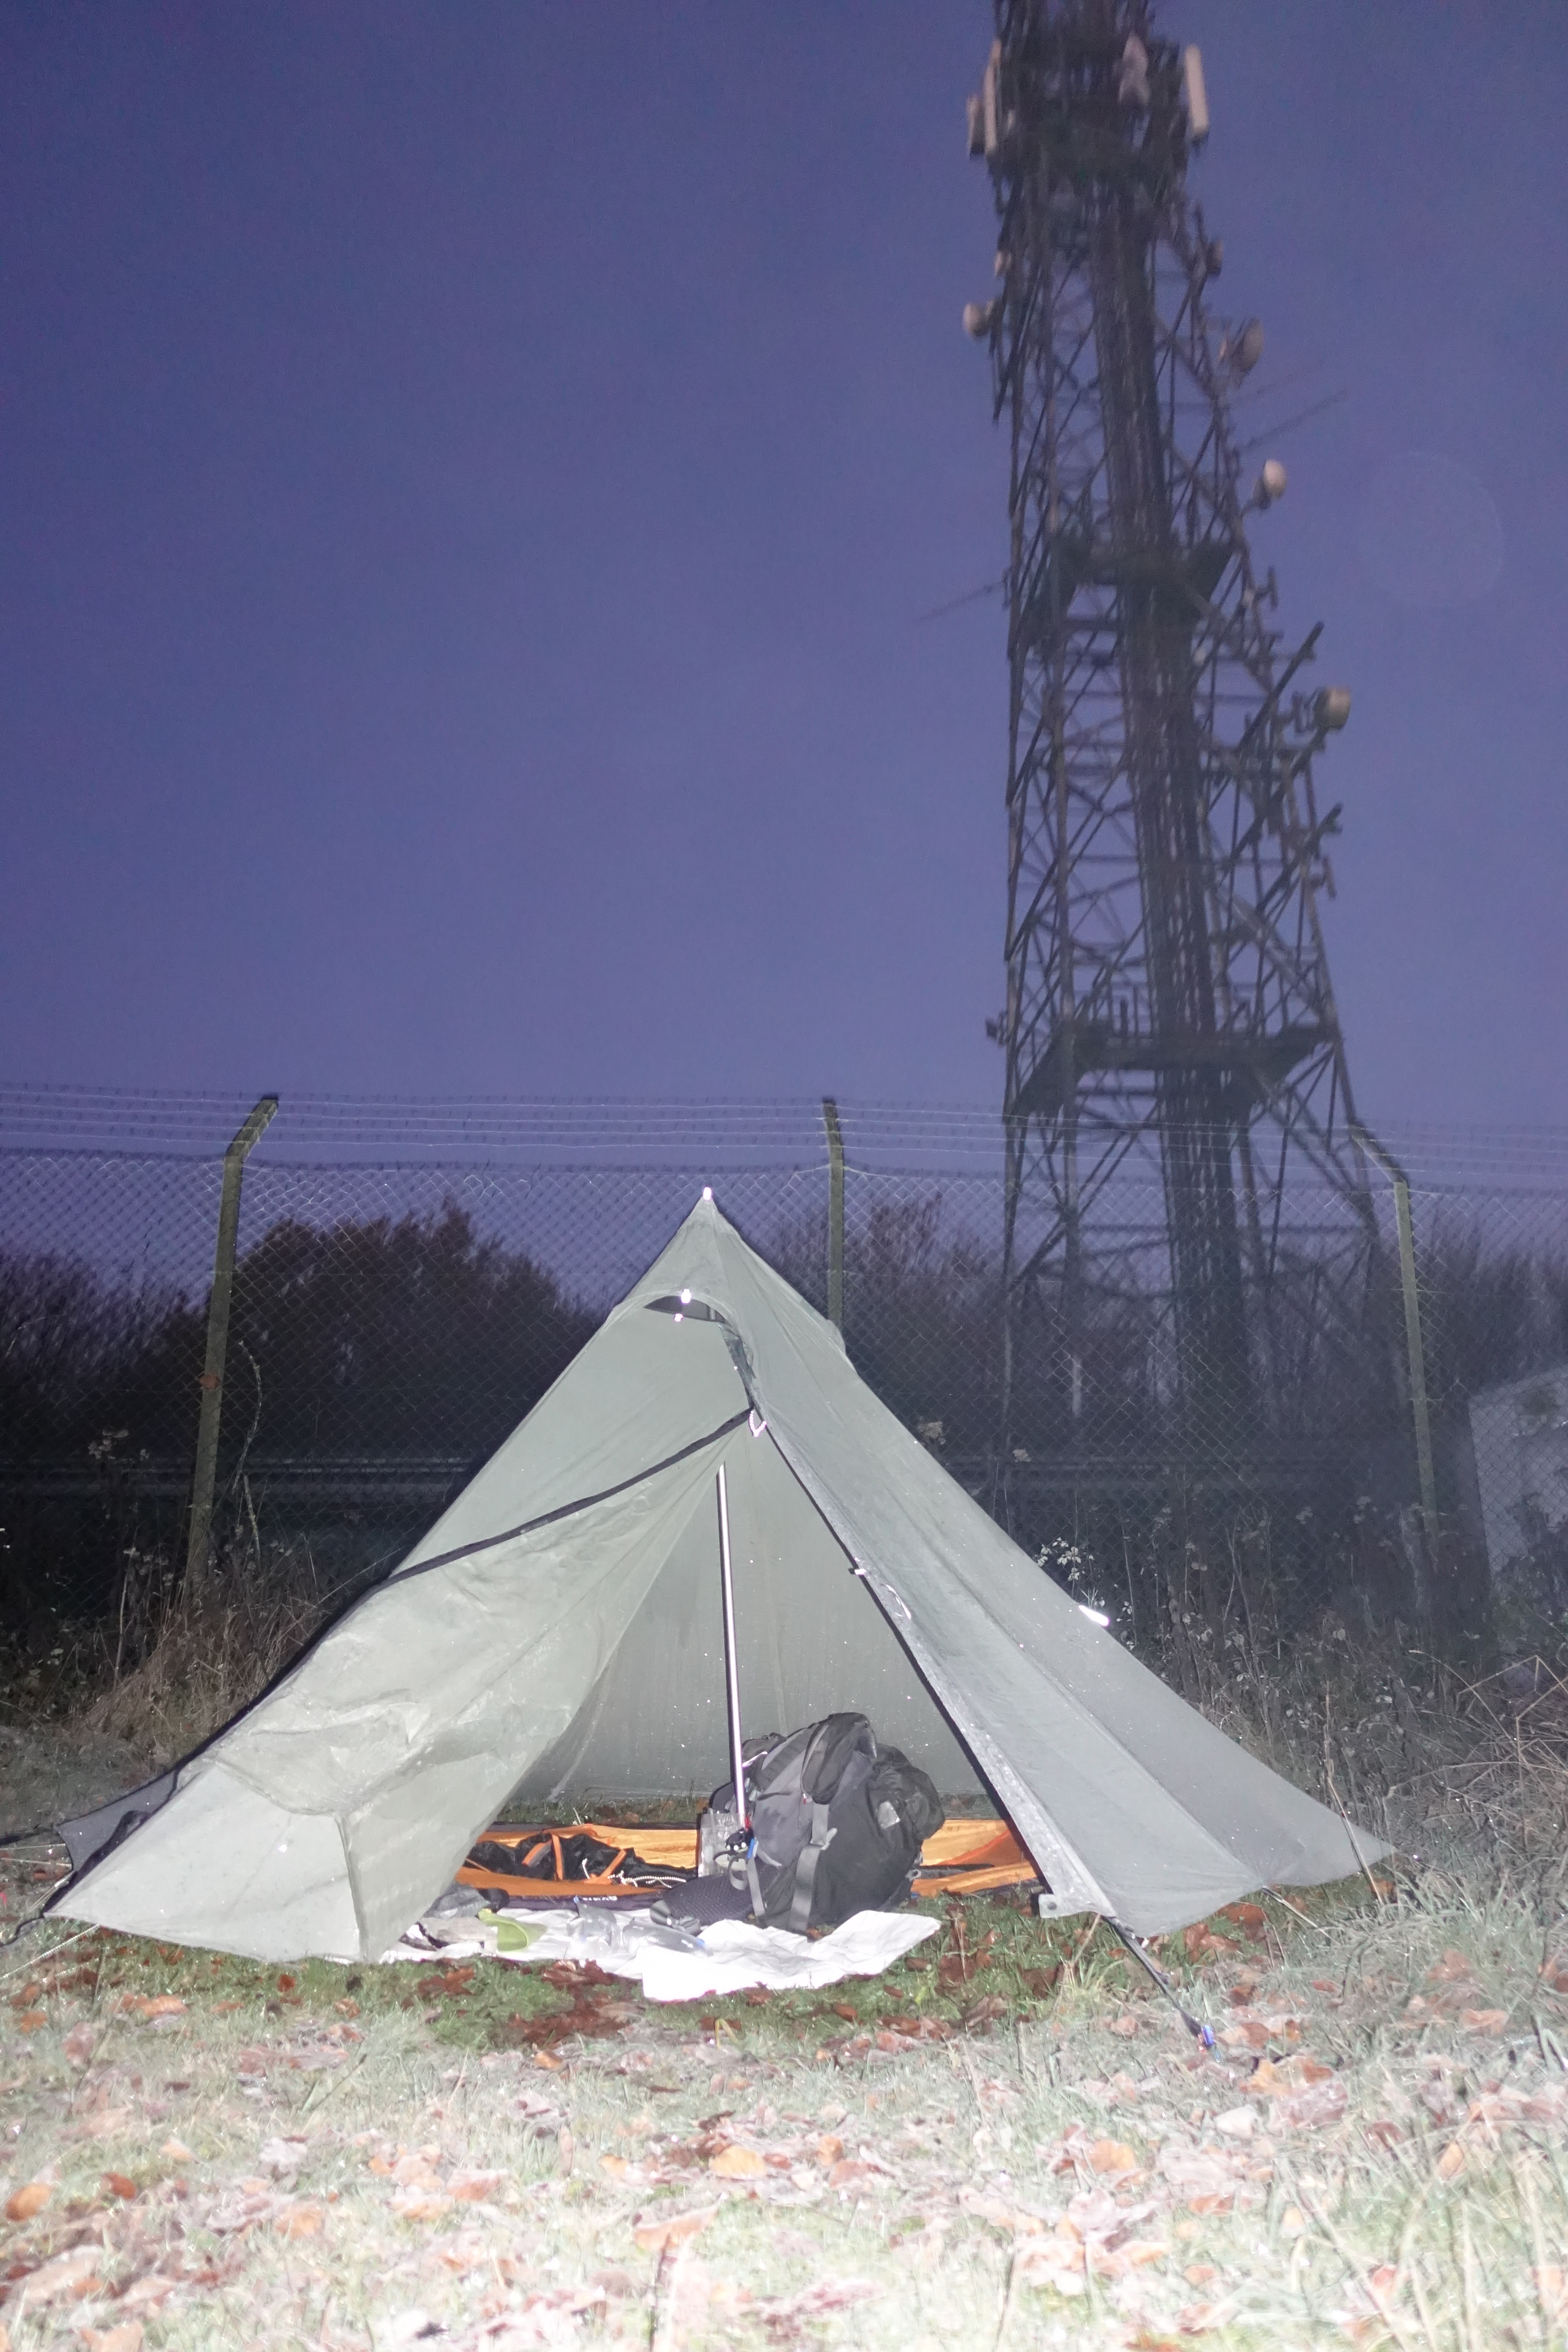 Saturday night's camp was on Glatting Beacon. I arrived around 16.30 and immediately pitched, it was dark by the time my shelter was up